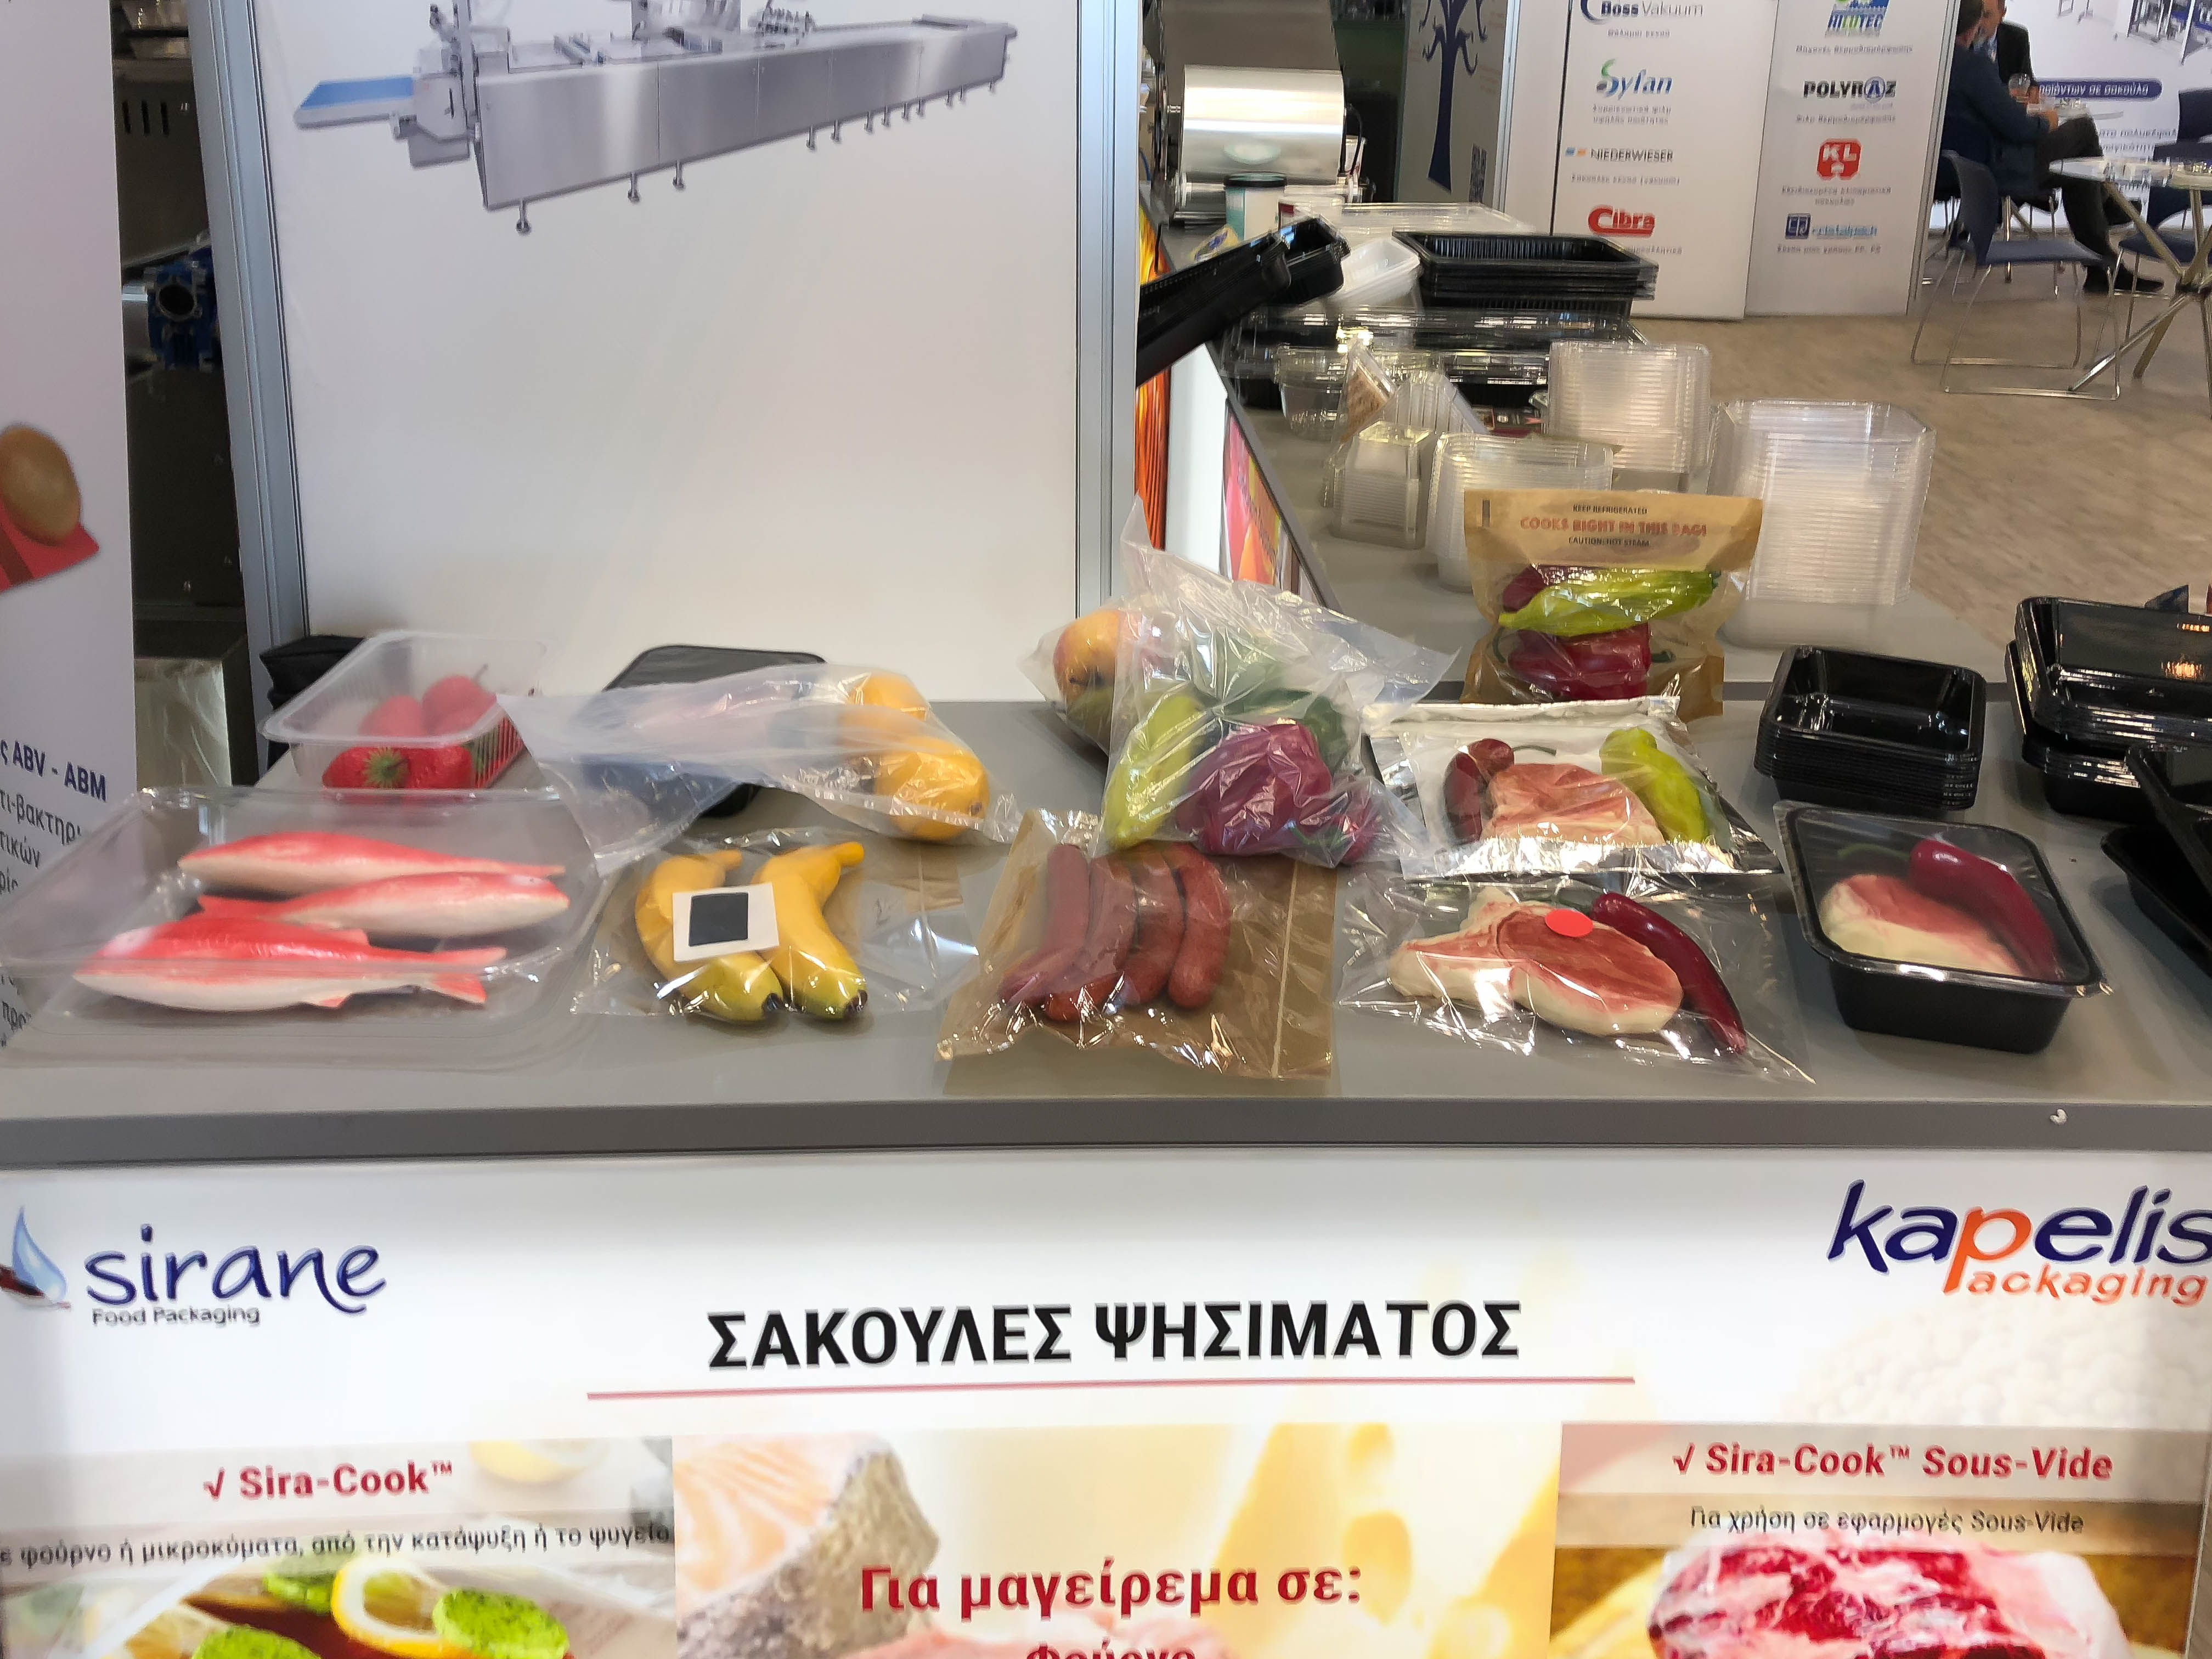 Sirane products on display as part of the Kapelis stand at Food Expo Greece